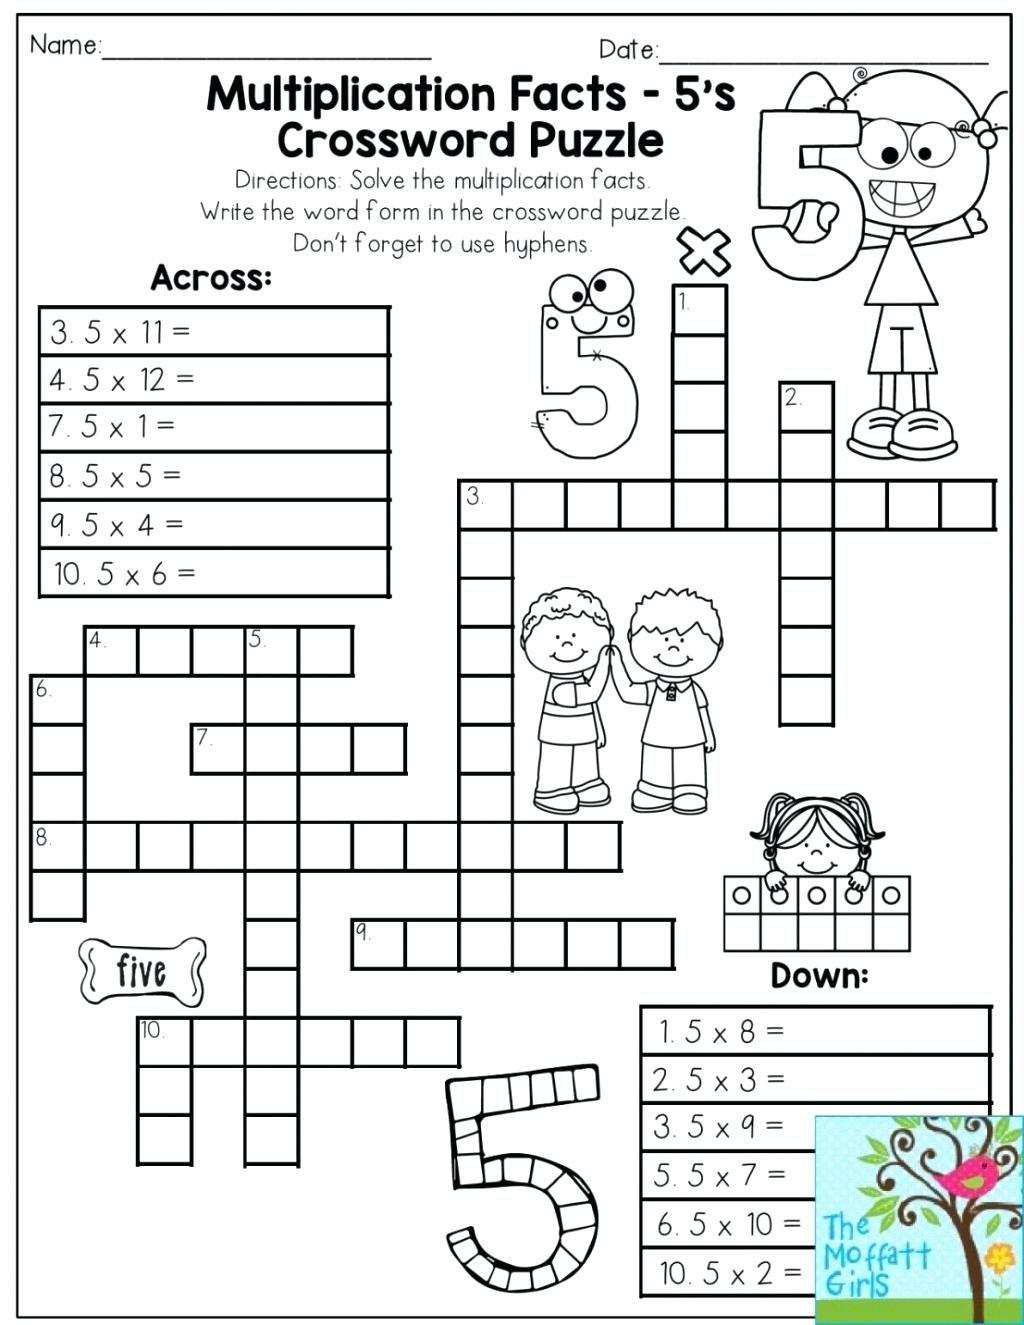 Printable Math Puzzles 5Th Grade Maths Ksheets Middle School Pdf Fun - Printable Maths Puzzles Ks3